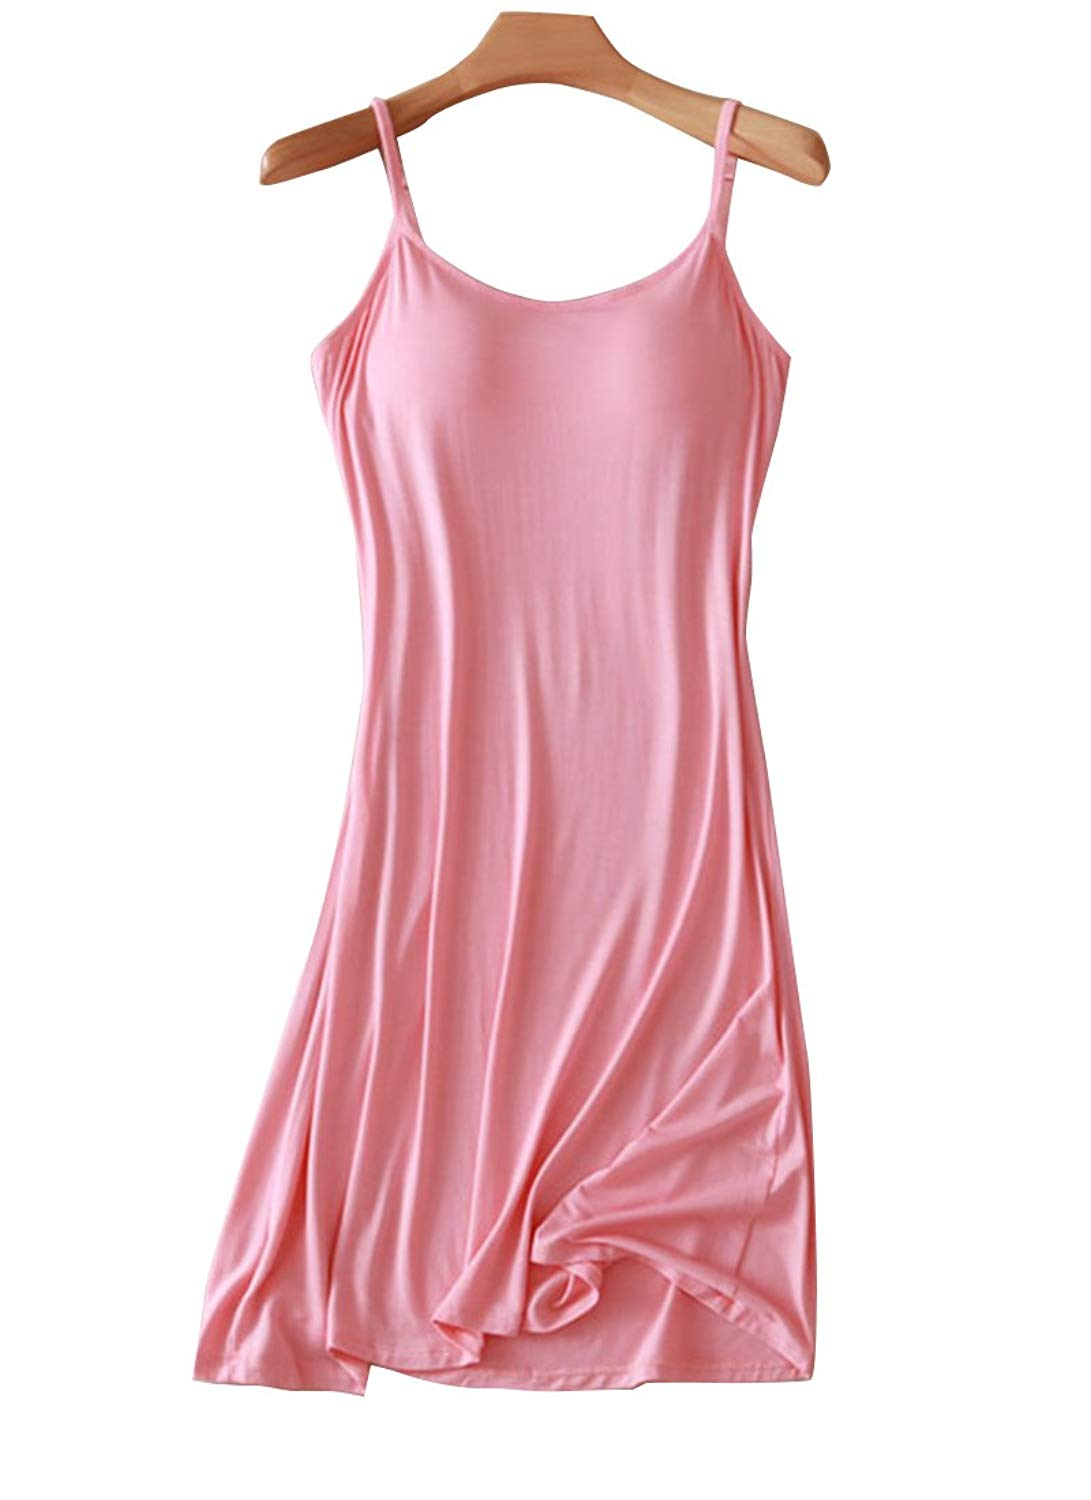 0249a561e2e95 Get Quotations · FOURSTEEDS Womens Modal Built in Bra Camisole Shelf Bra  Spaghetti Straps Tank Dress